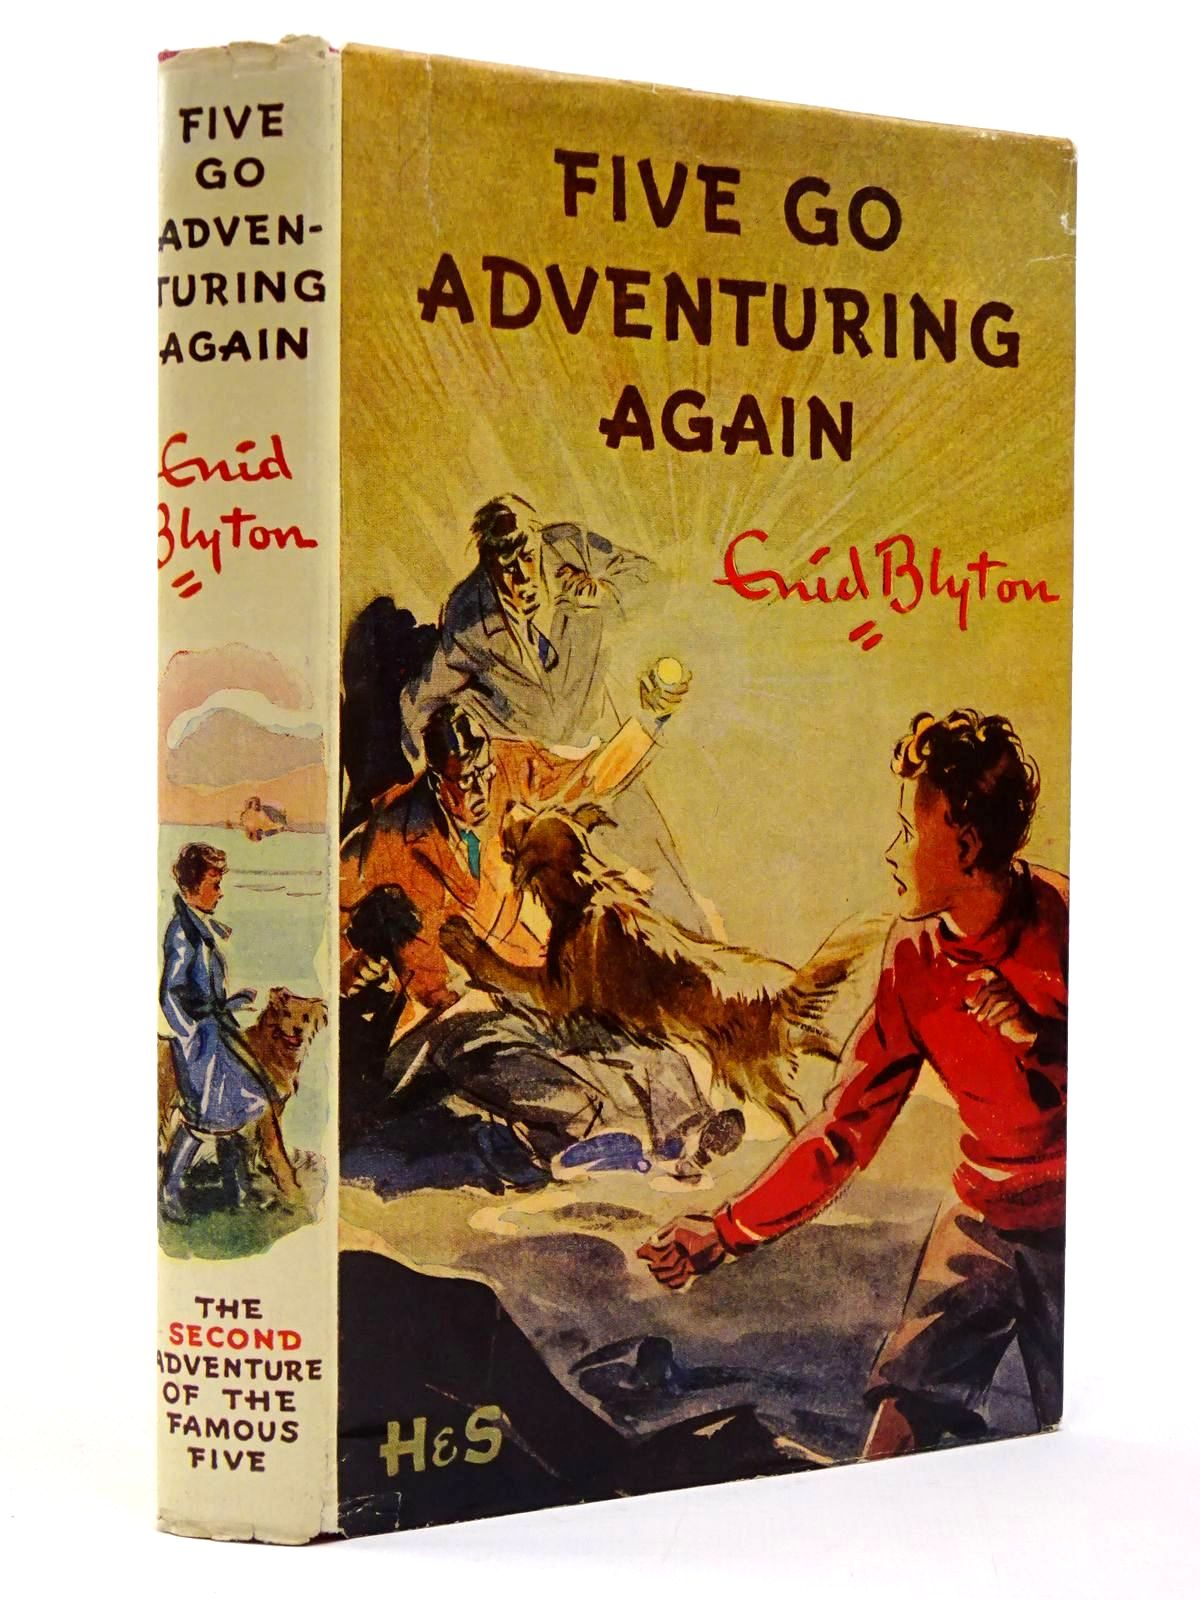 Cover of FIVE GO ADVENTURING AGAIN by Enid Blyton